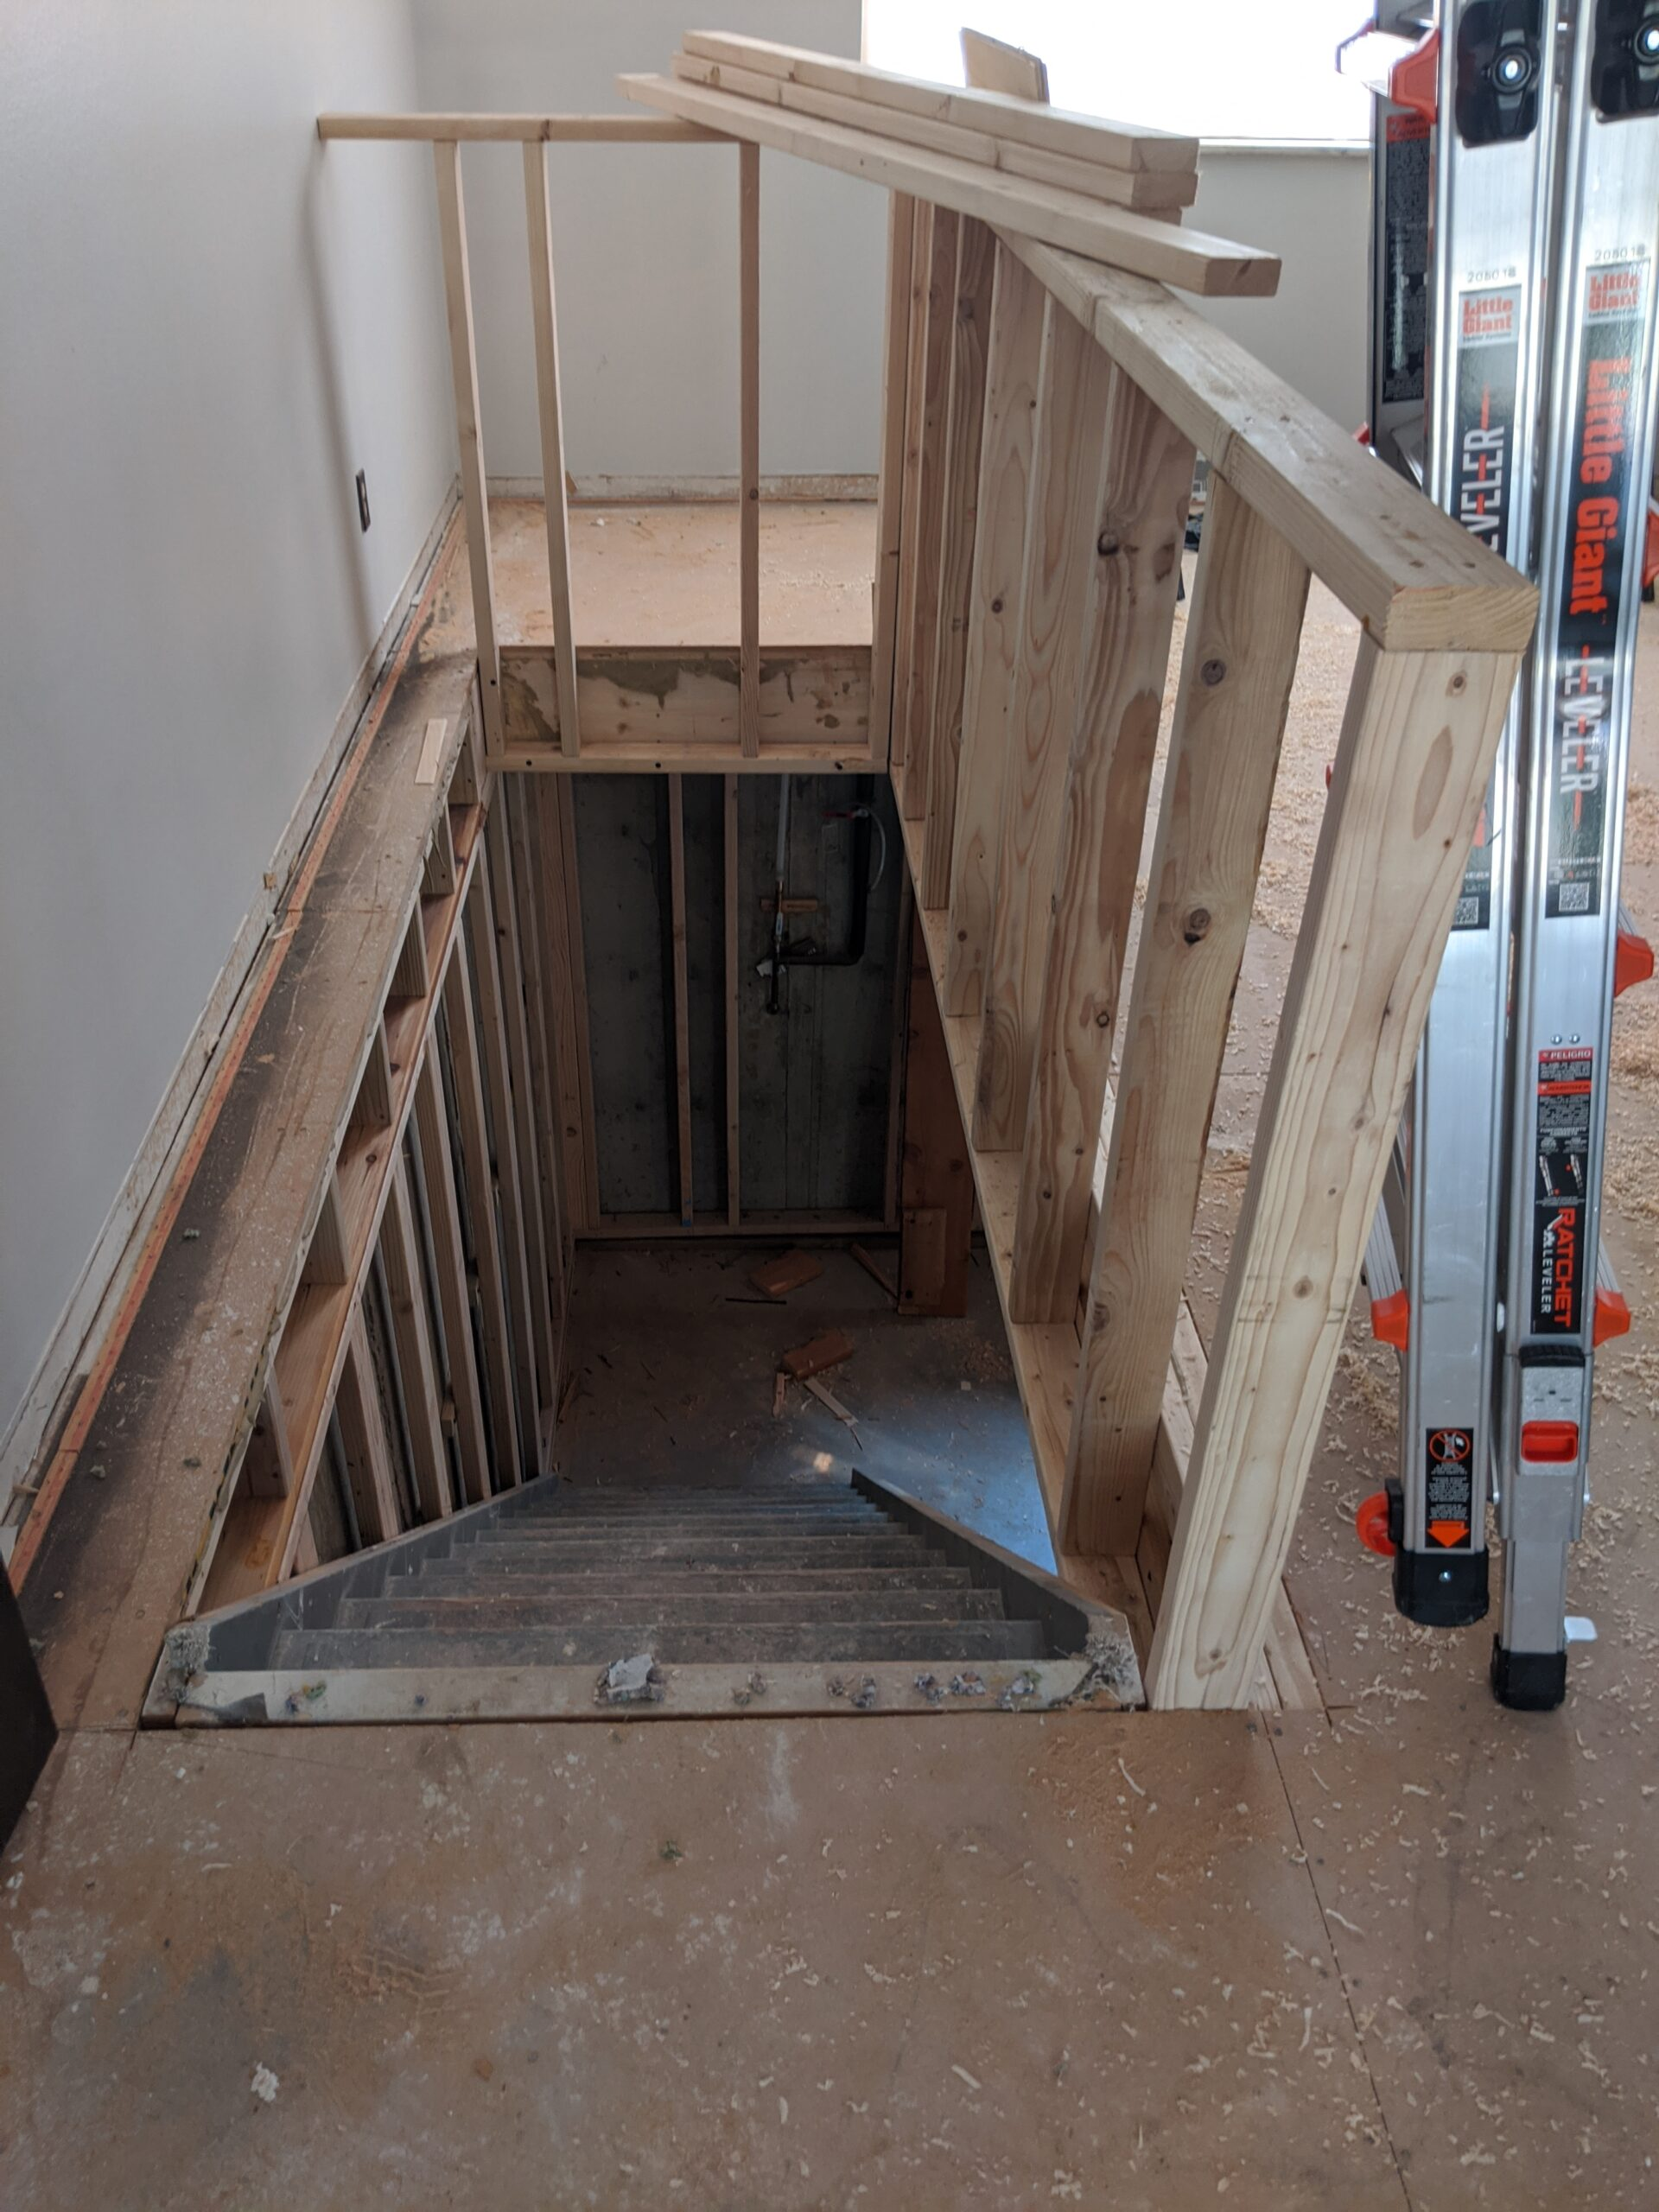 IN PROGRESS: He built a new half-wall around the stairs so the abundant natural light from that south-facing picture window isn't blocked.